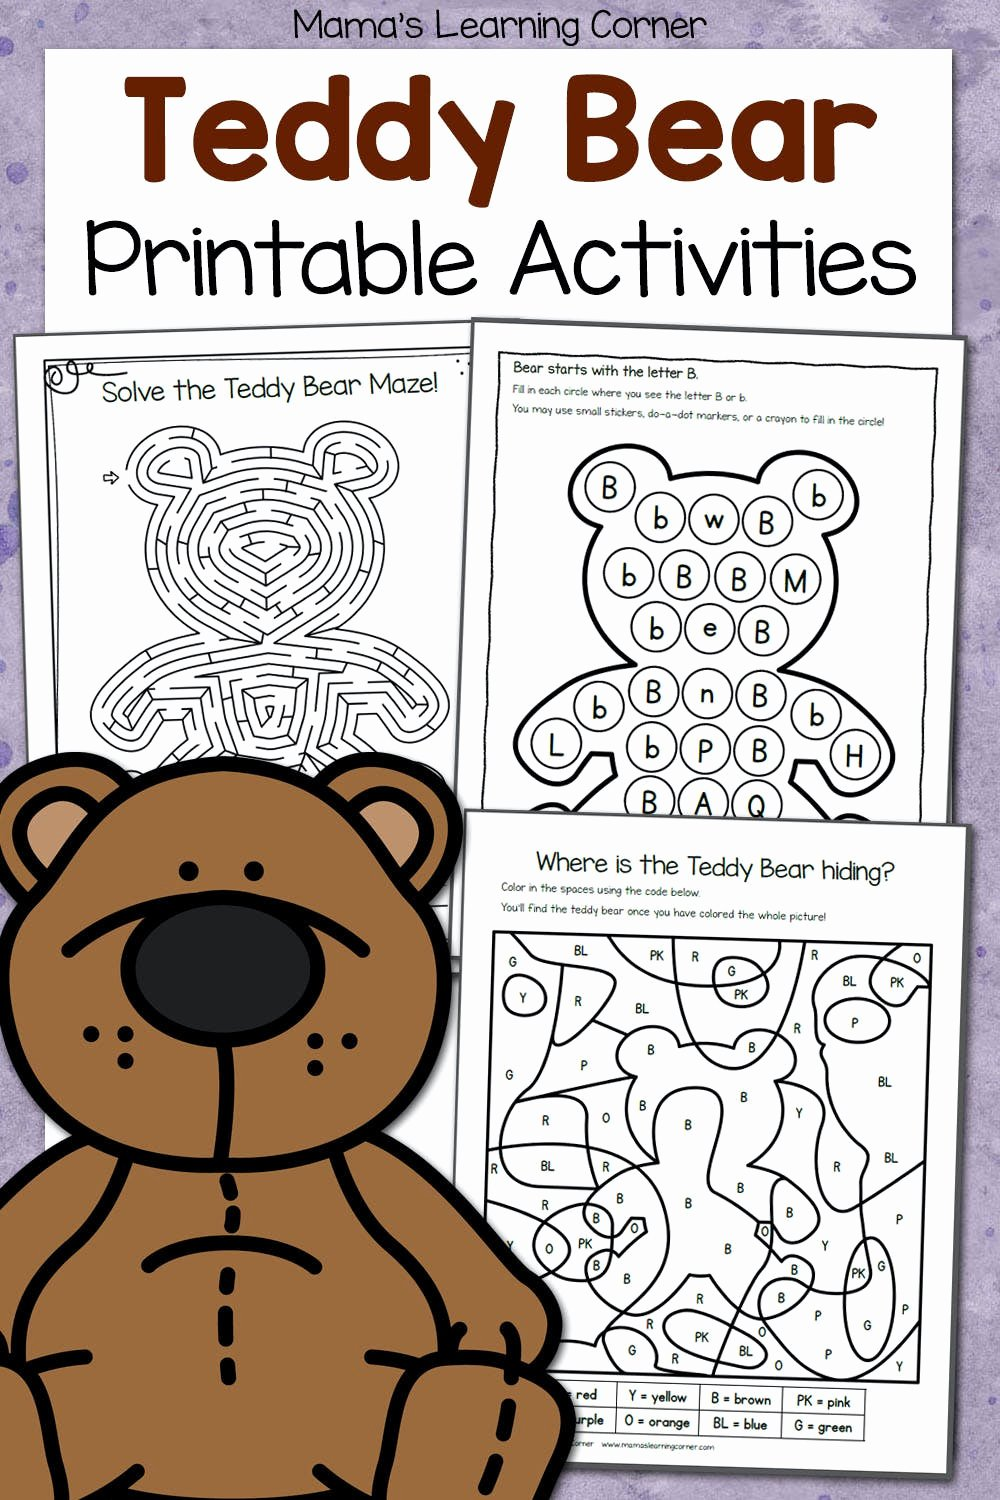 Teddy Bear Worksheets for Preschoolers Kids Teddy Bear Activities Printable Packet Mamas Learning Corner